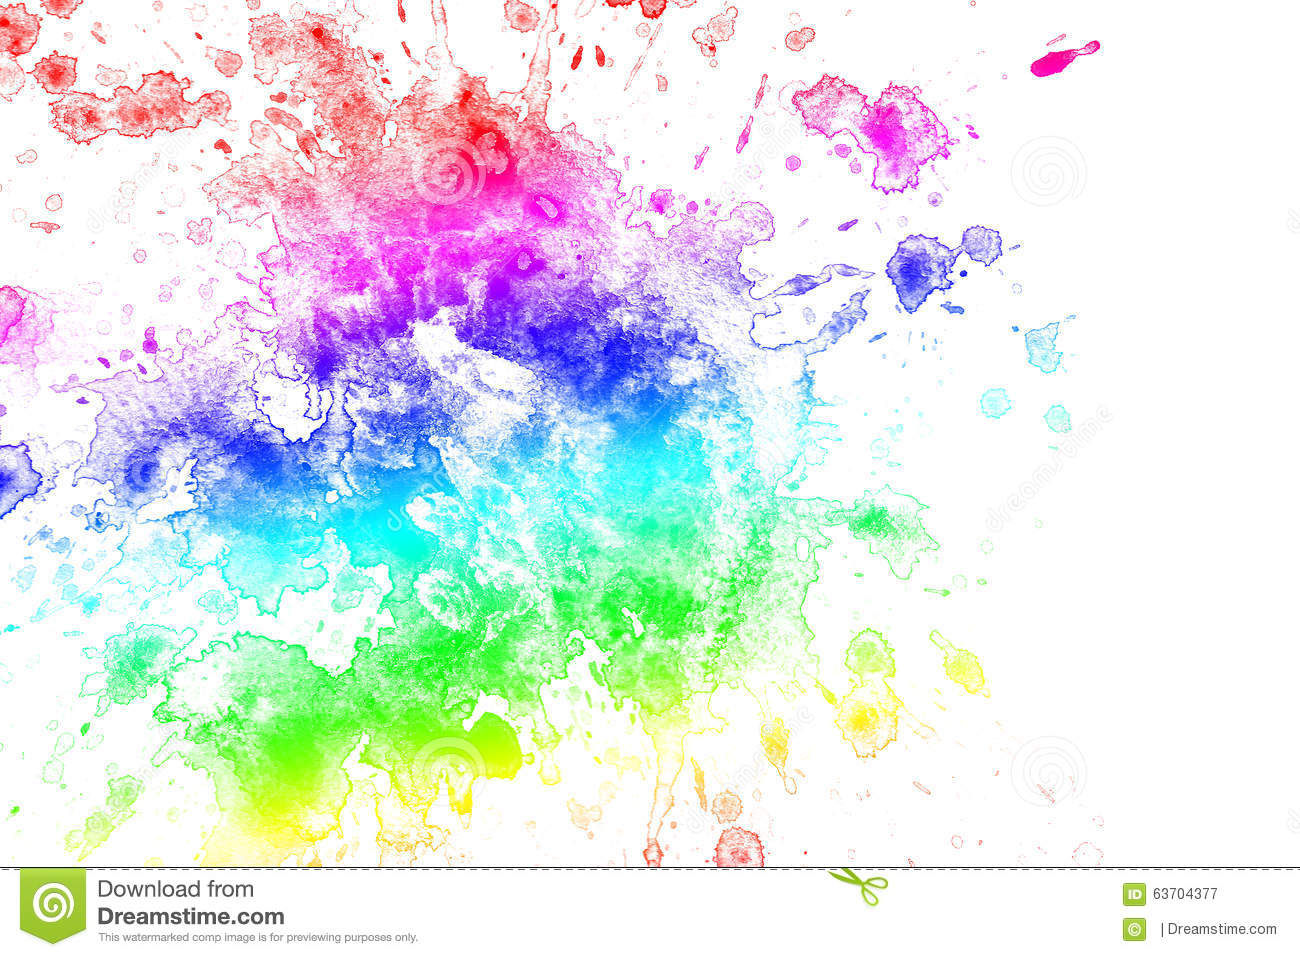 Splatter Stock Images RoyaltyFree Images amp Vectors